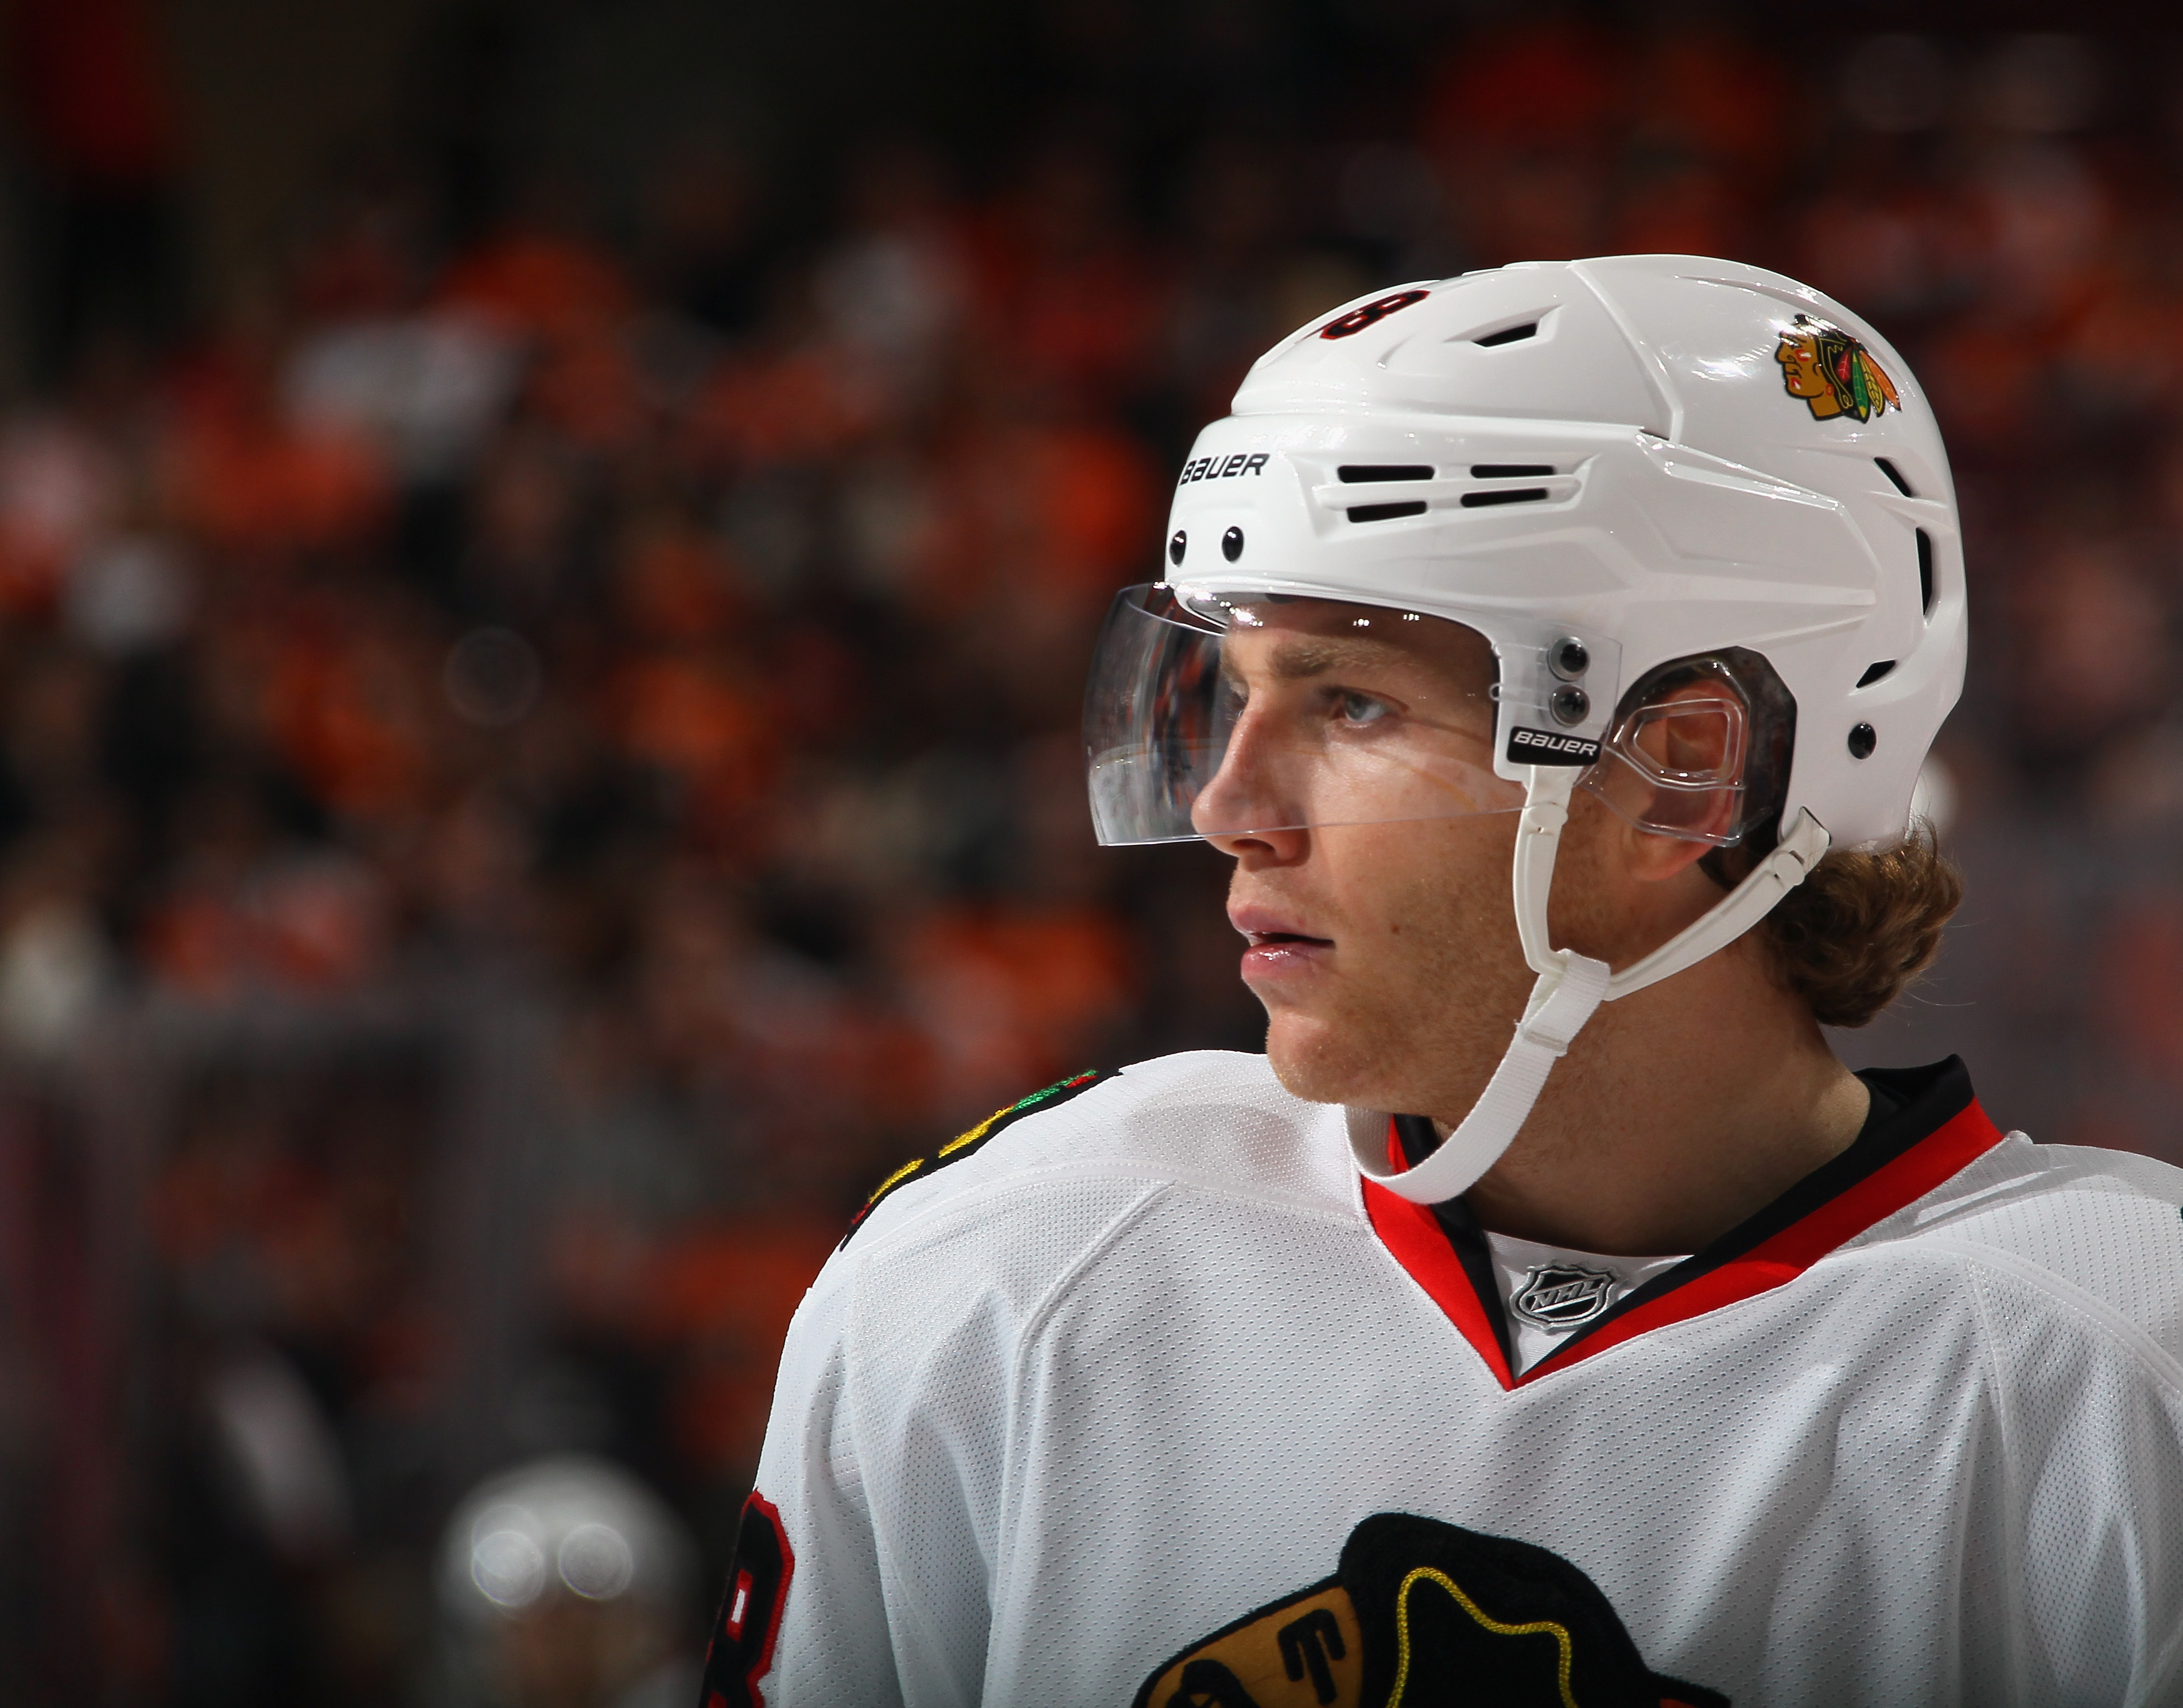 NHL News: Blackhawks' Patrick Kane Not Charged With Rape, Allegation 'Rife With Reasonable Doubt ...